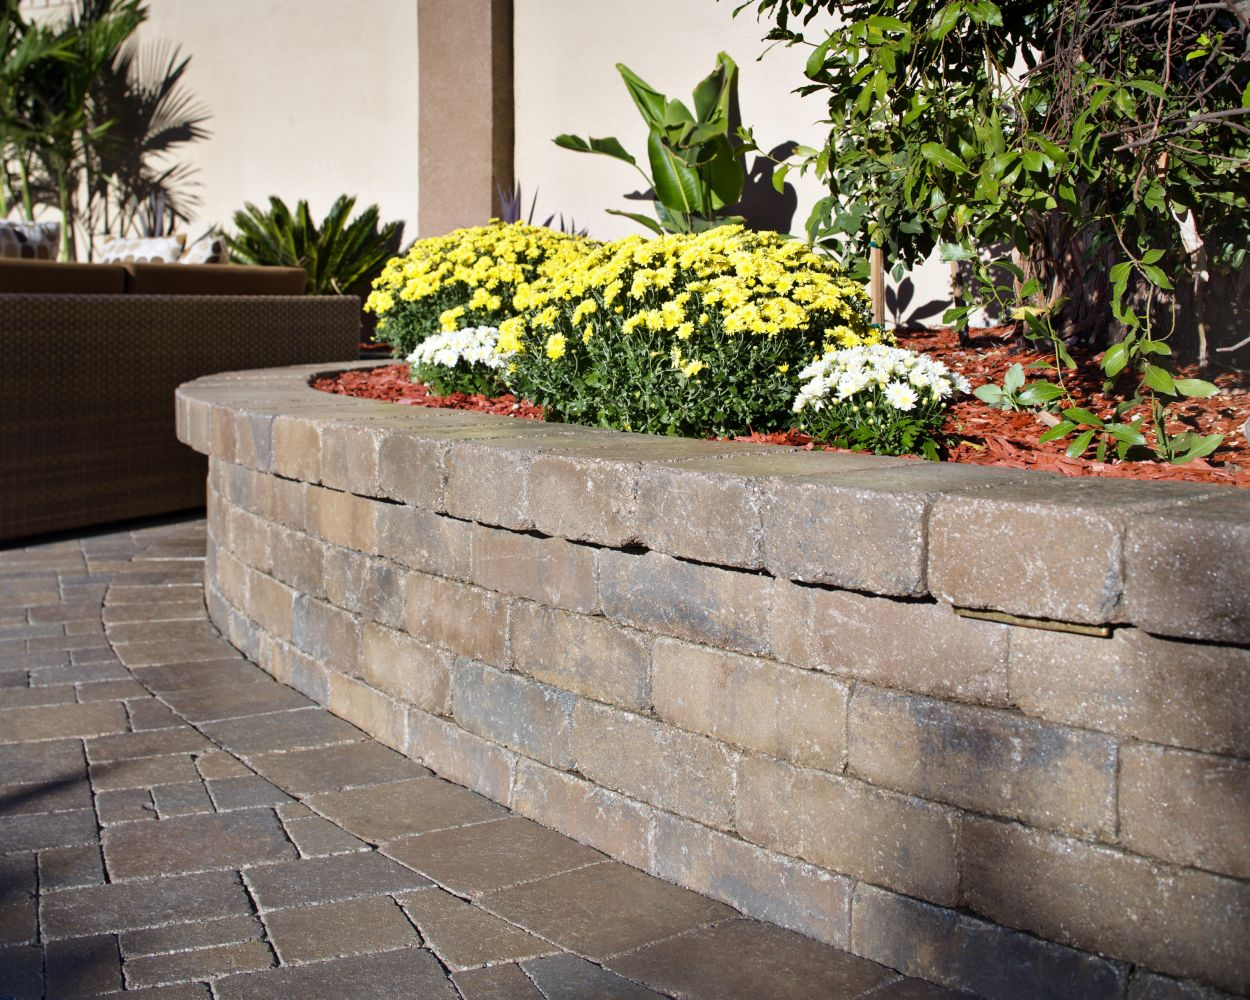 How to save water and add color with island flower beds for Landscaping garden beds